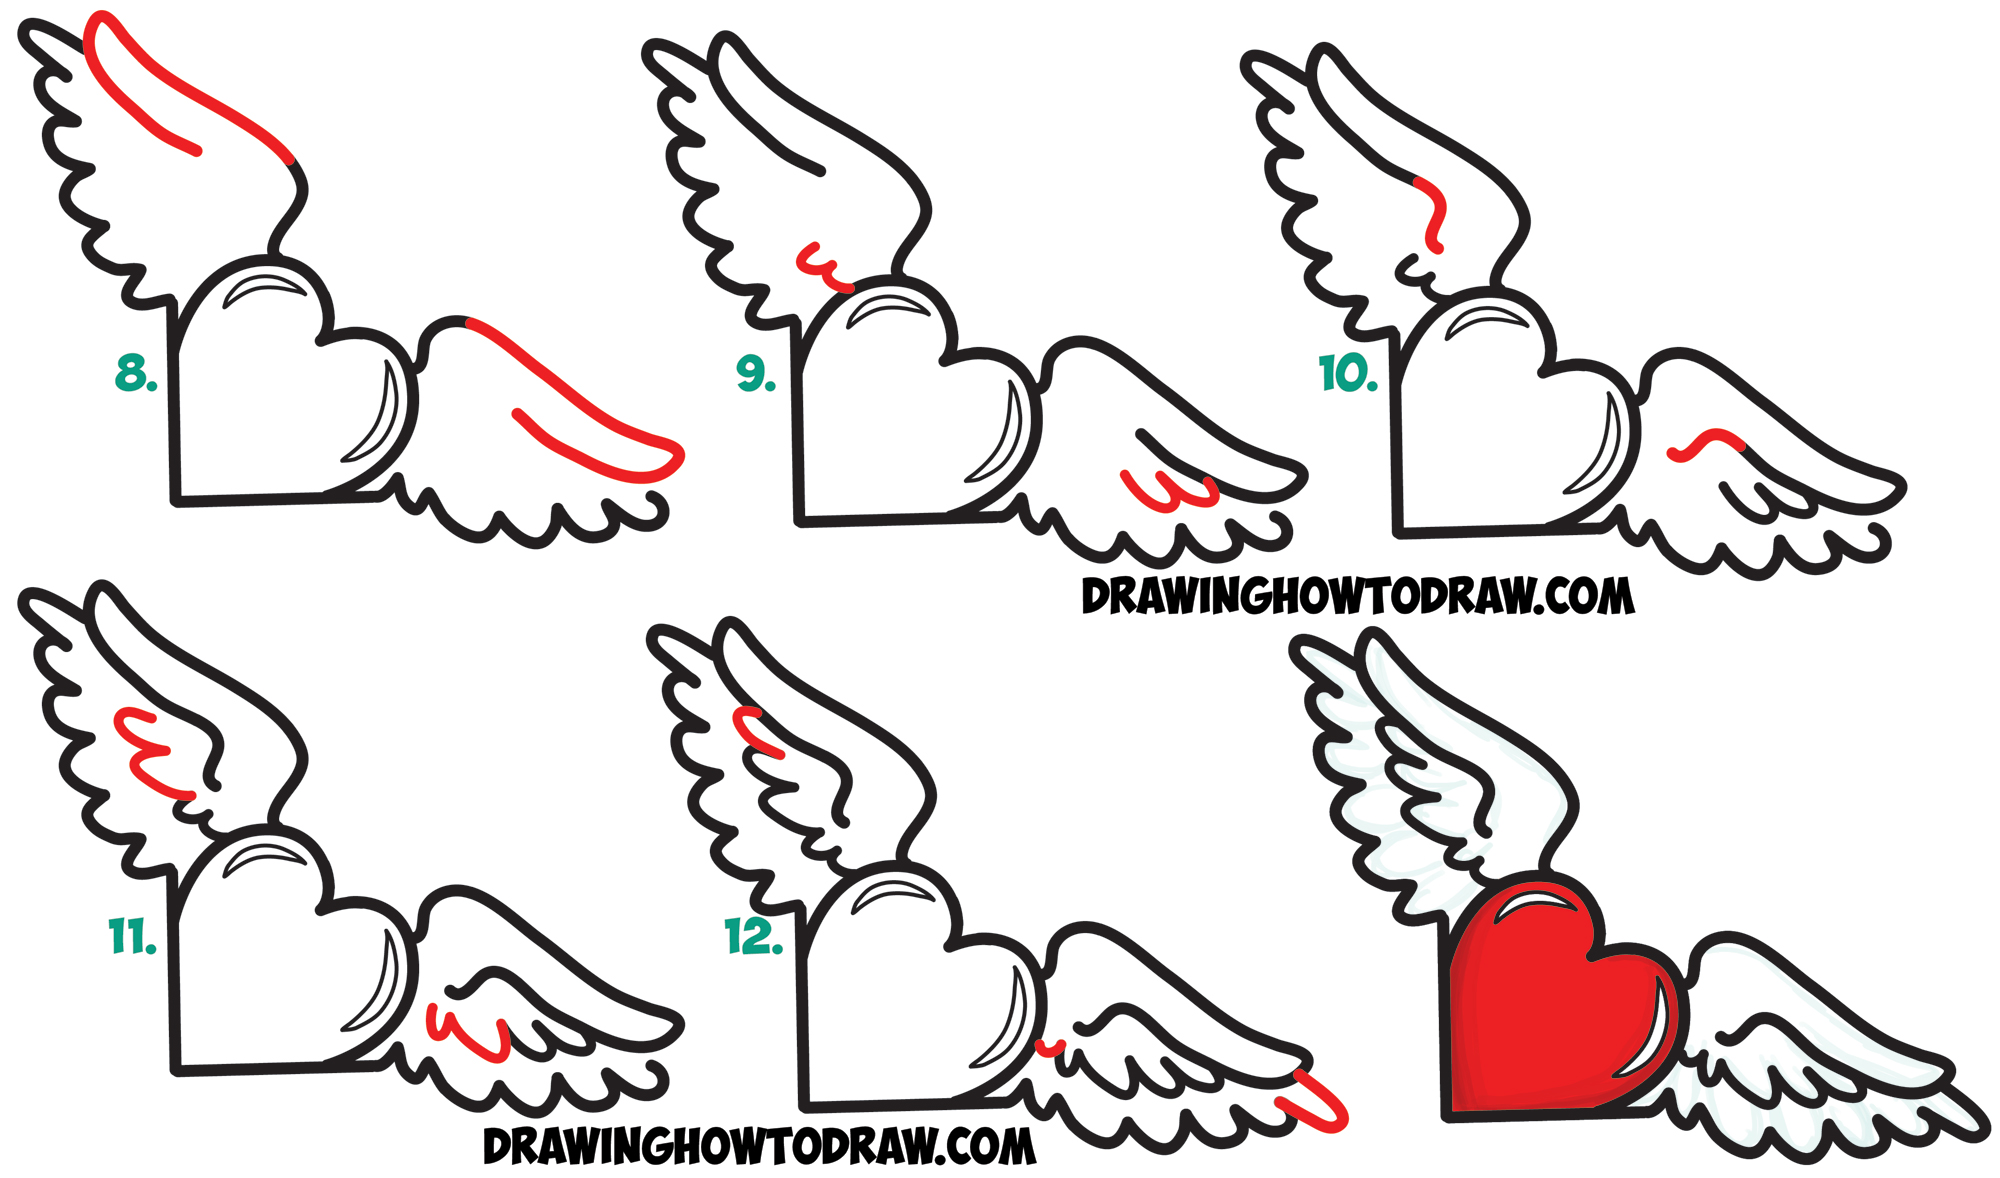 Learn How to Draw Hearts with Wings from Lowercase Letter r Shapes - Simple Steps Drawing Lesson for Kids